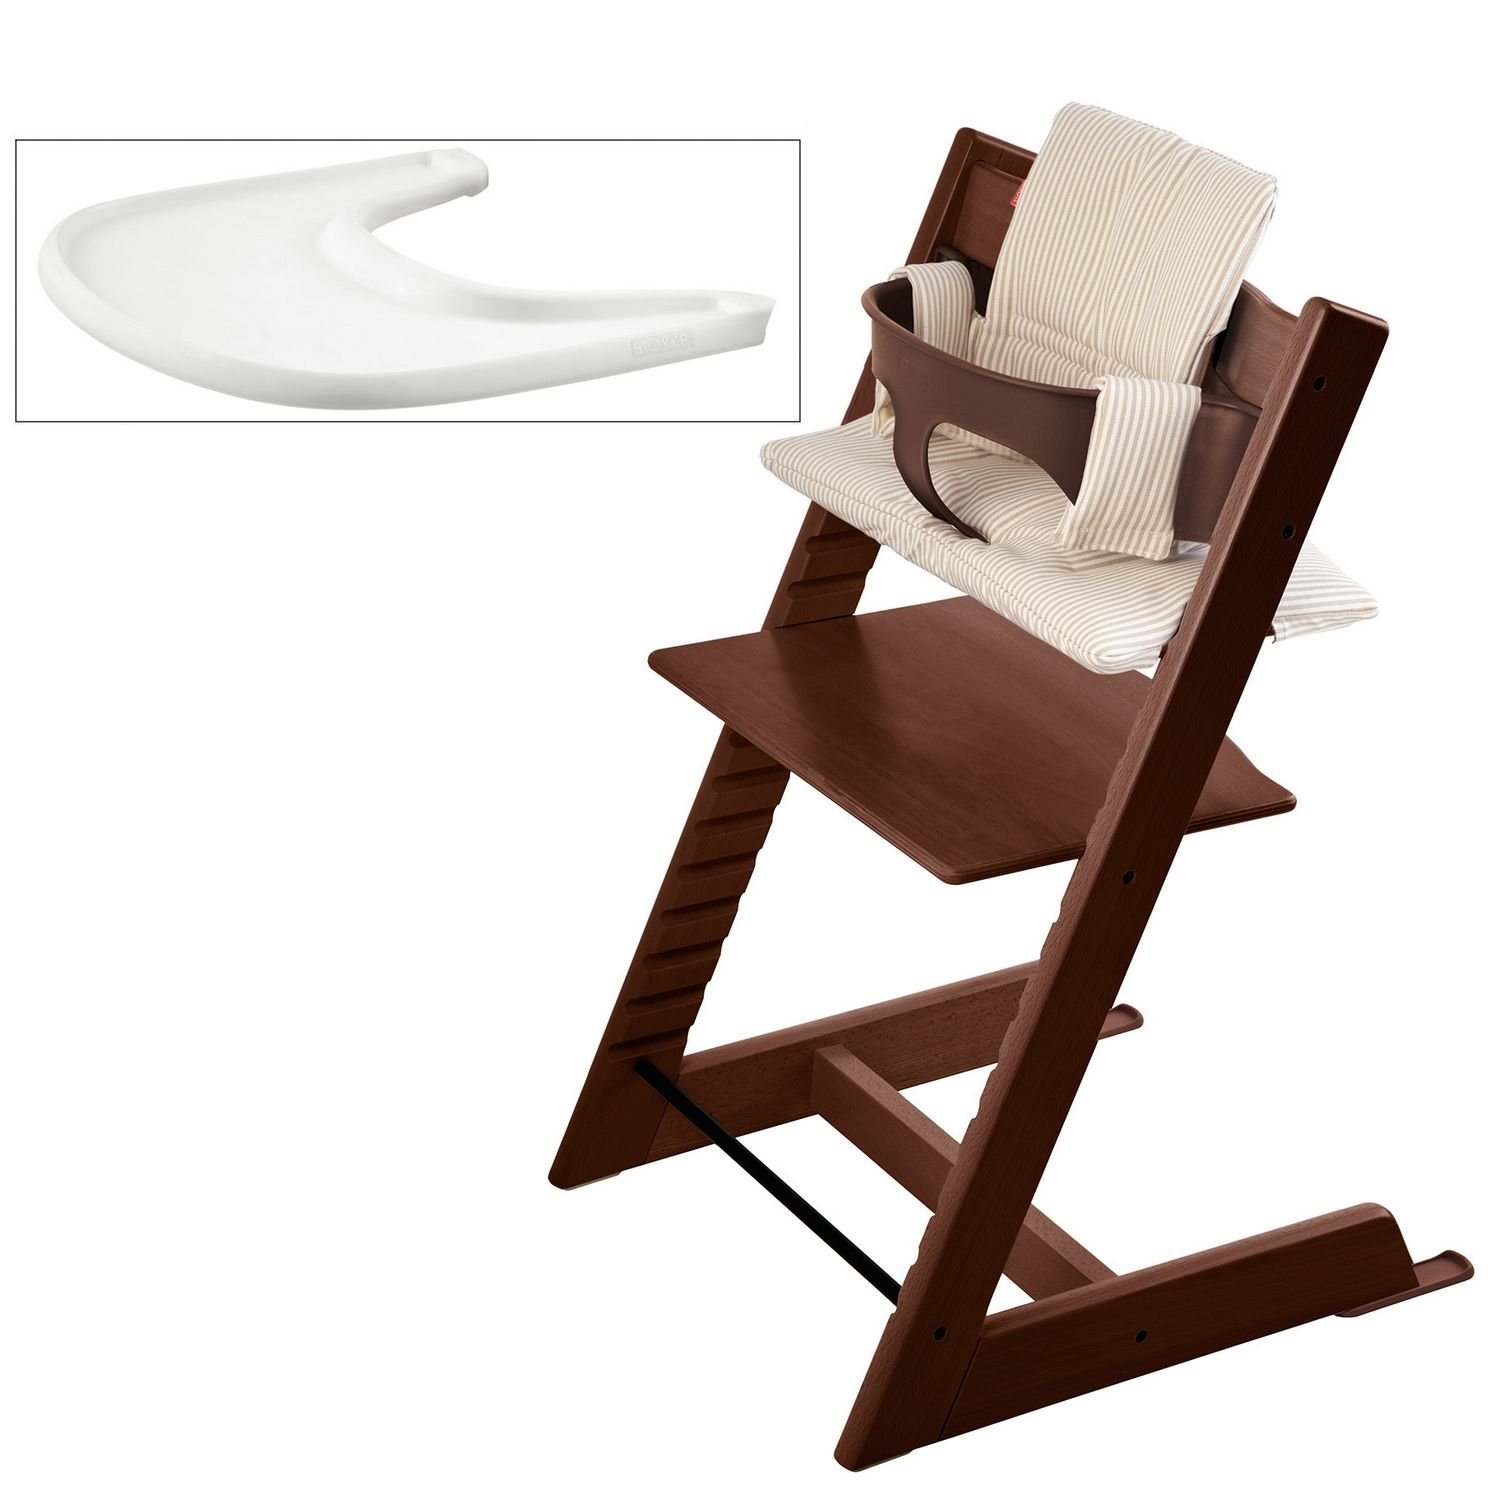 Stokke Tripp Trapp High Chair Bundle, Walnut